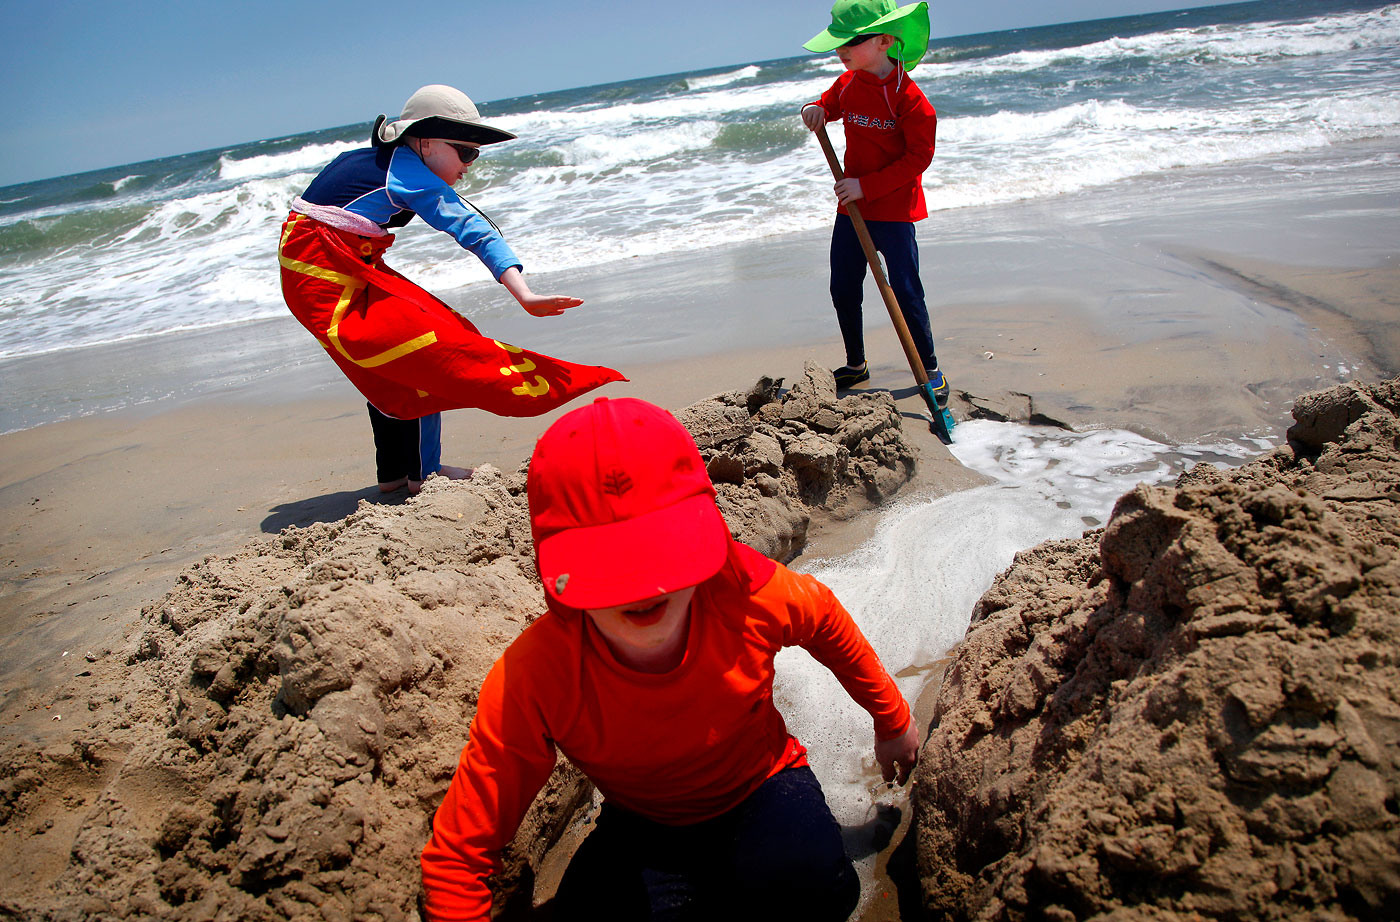 Paul, Elijah and Micah build a sandcastle during the Andersons' family beach trip to the Outer Banks in Corolla, N.C. To protect themselves from the sun, the boys have to keep their skin covered.